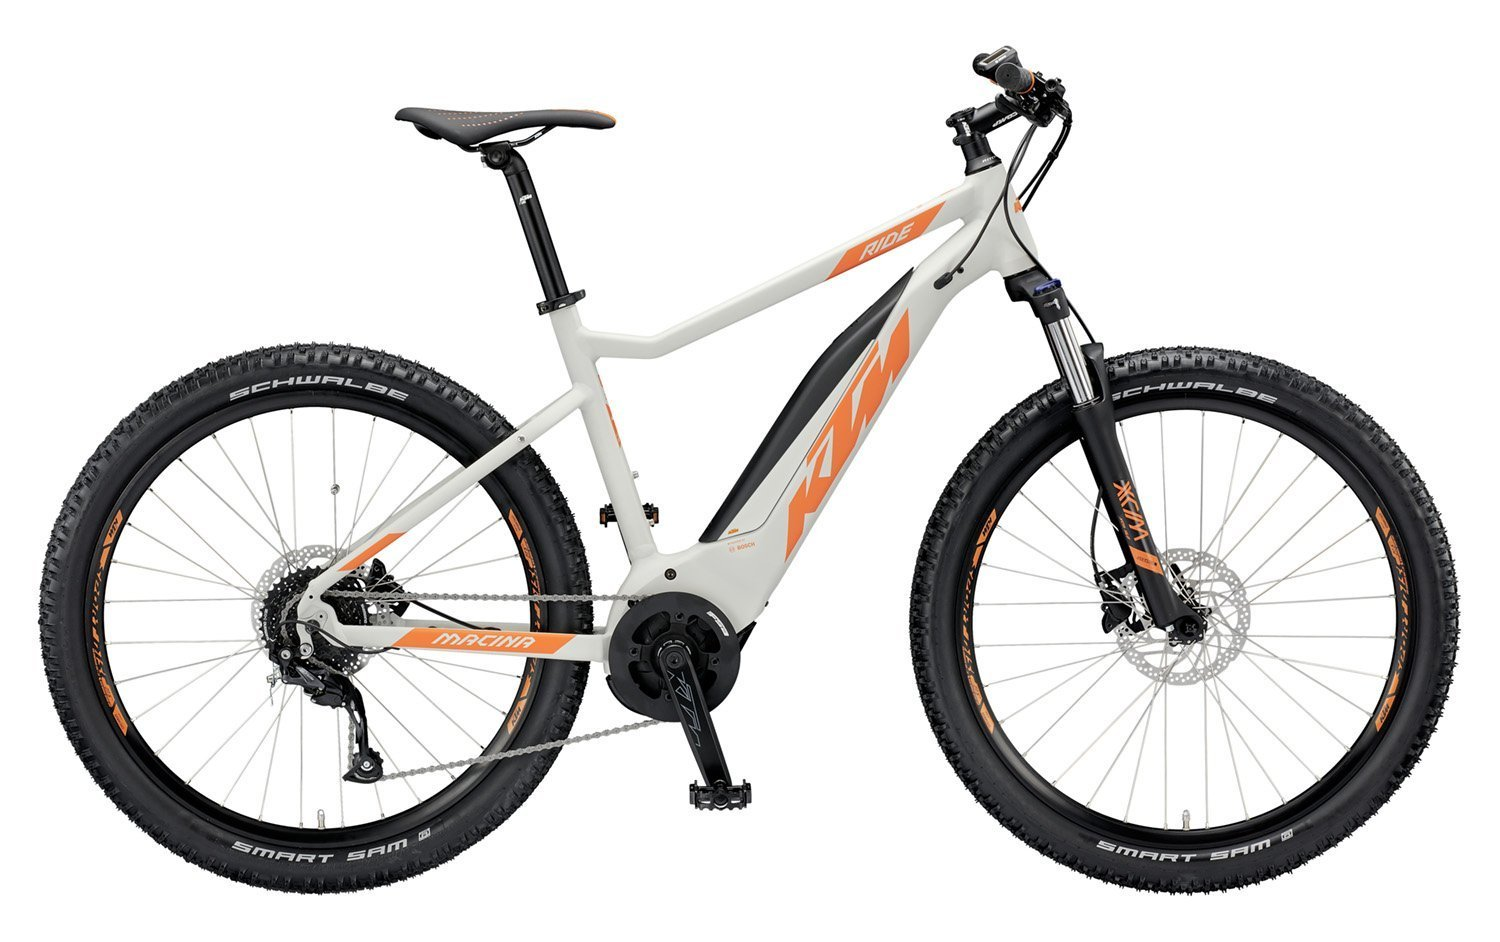 ktm macina ride 272 bosch elektro fahrrad 2019 online. Black Bedroom Furniture Sets. Home Design Ideas